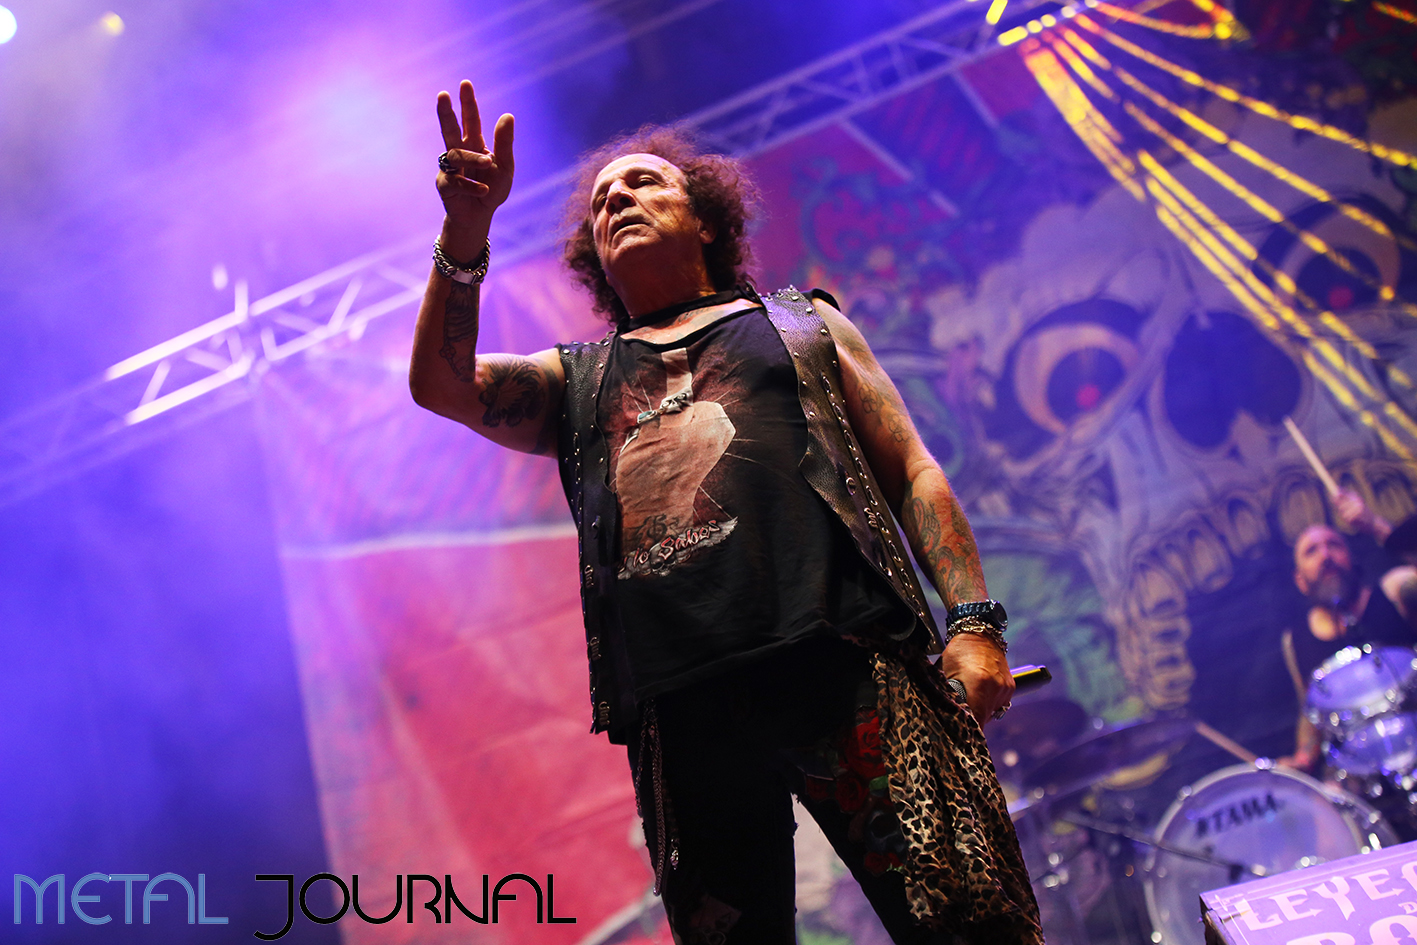 obus - leyendas del rock 2019 metal journal pic 5